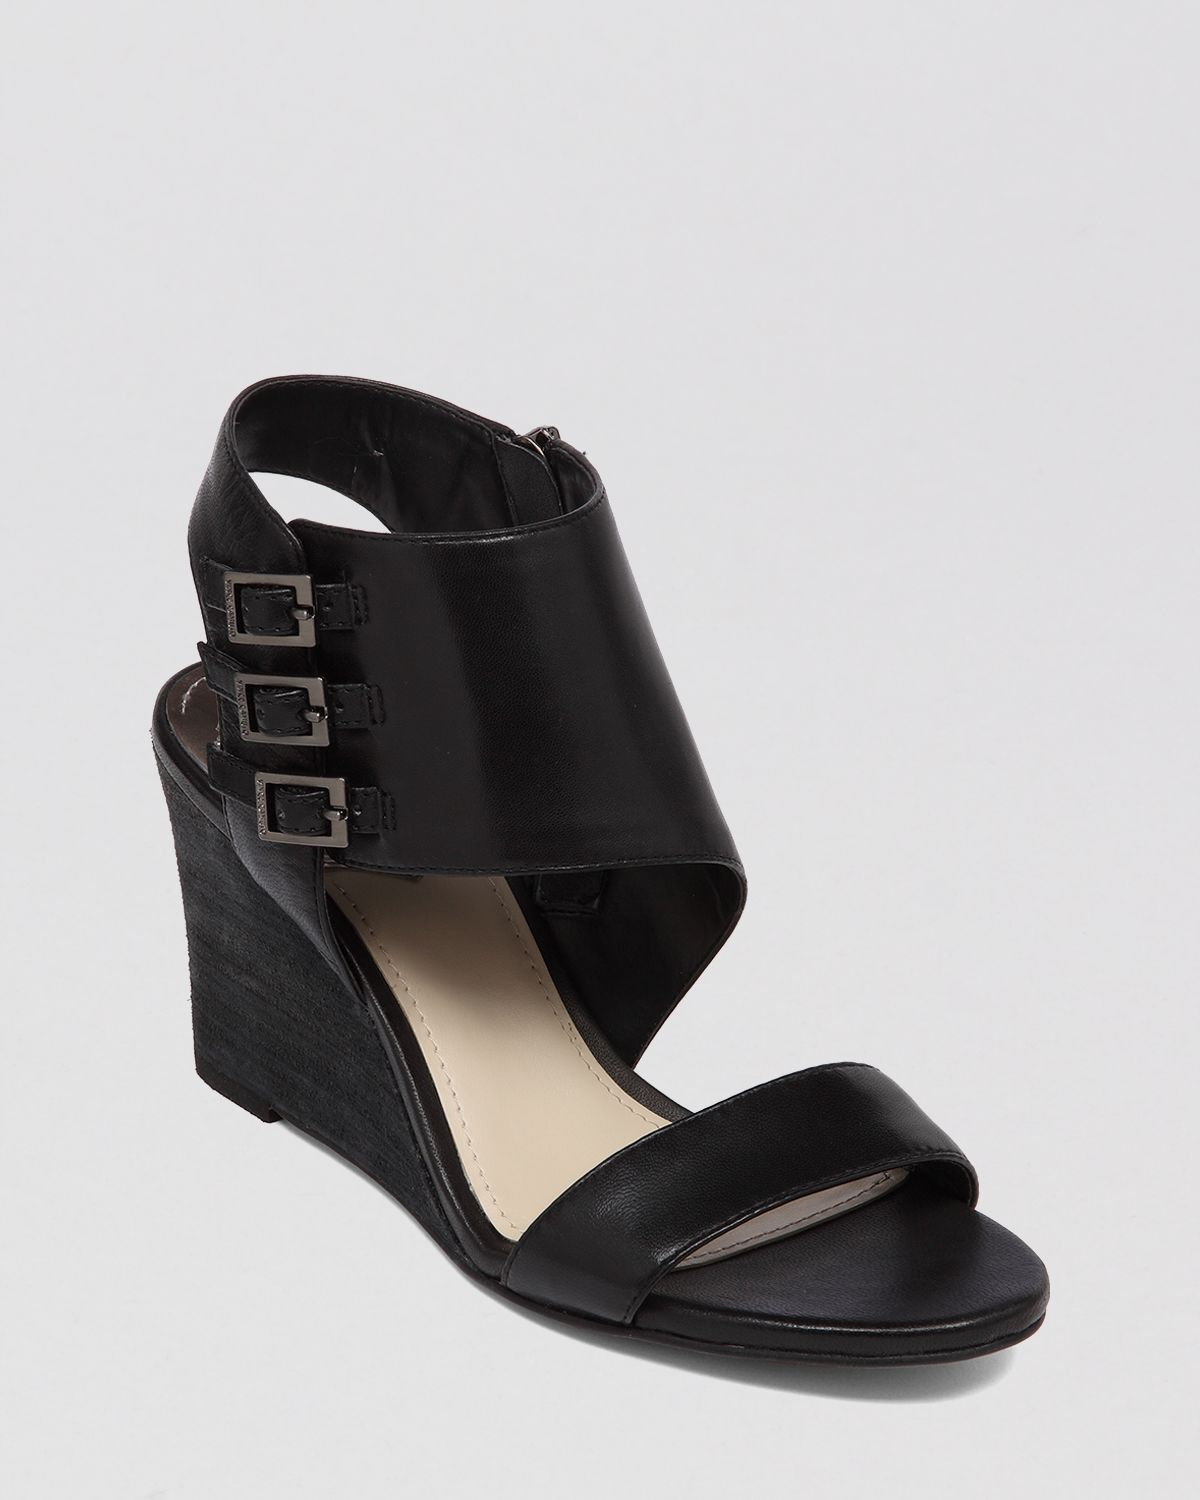 vince camuto open toe wedge sandals lyssia in black lyst